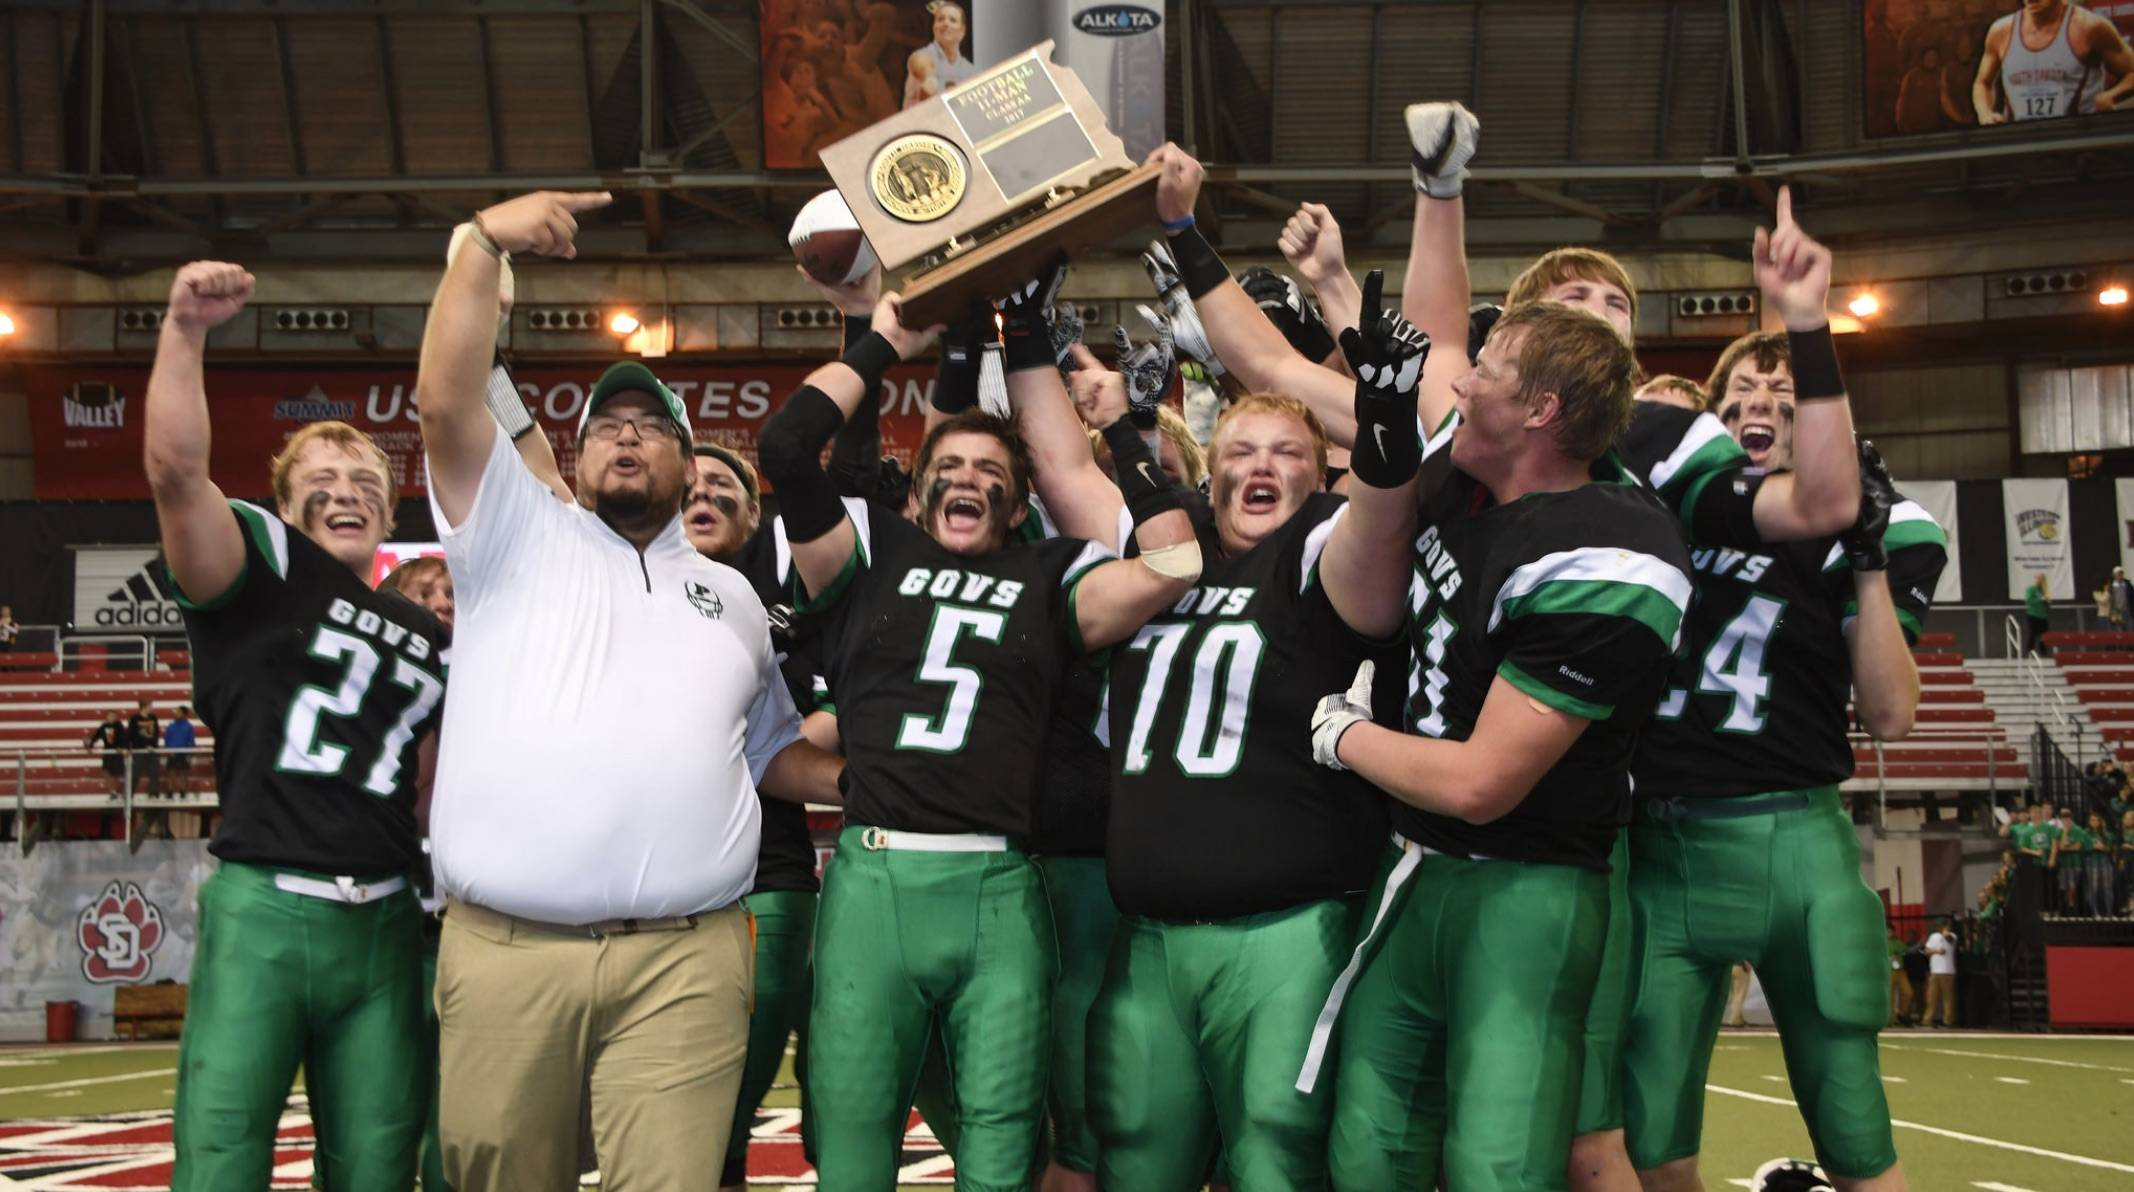 Pierre Govs football team holding state title